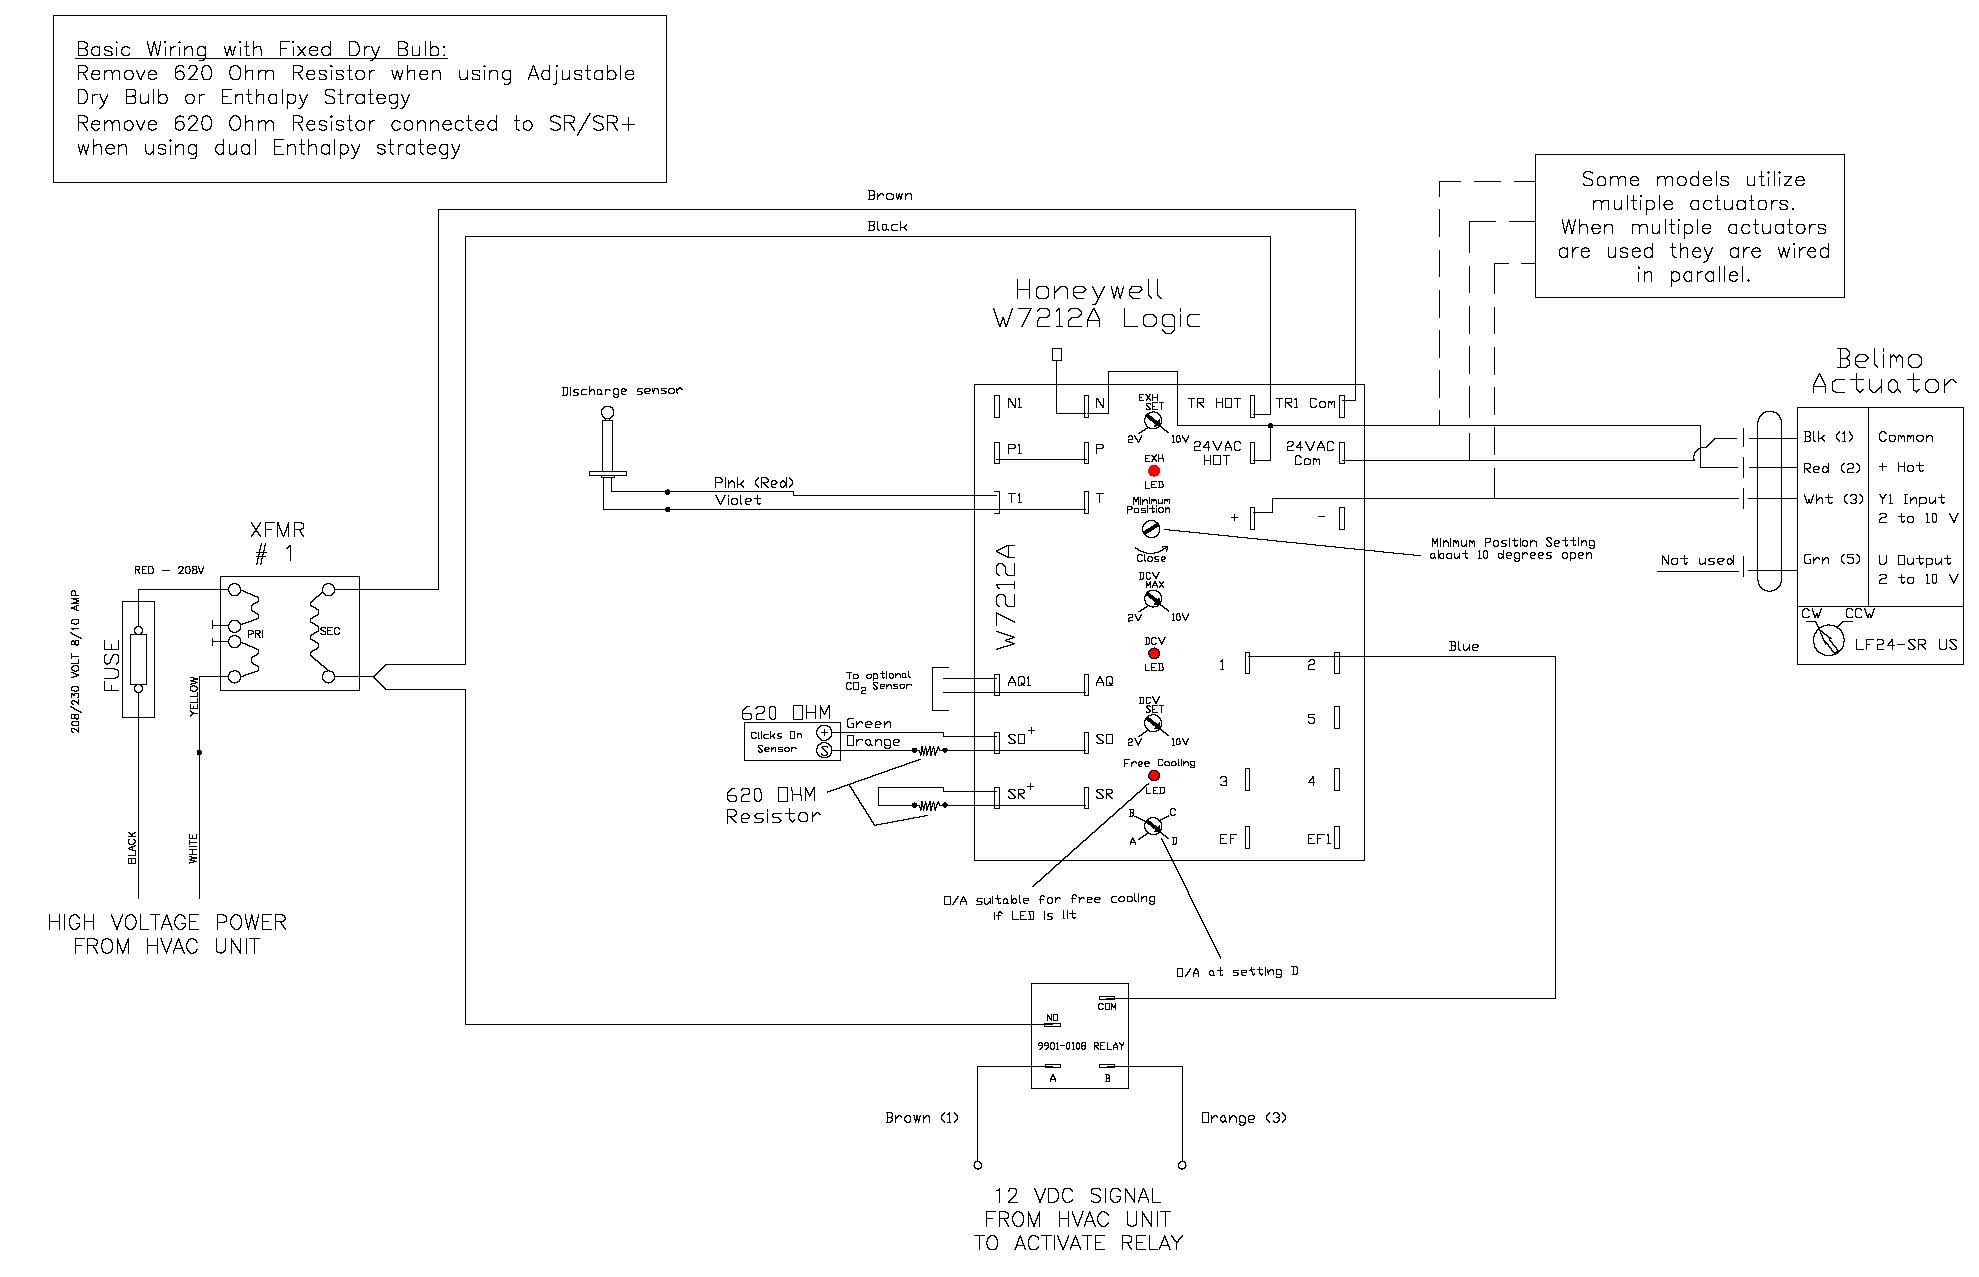 working with the honeywell w7212 economizer controller how i came rh av8rdas wordpress com 5 Wire Oxygen Sensor Diagram Garage Door Sensor Circuit Diagram